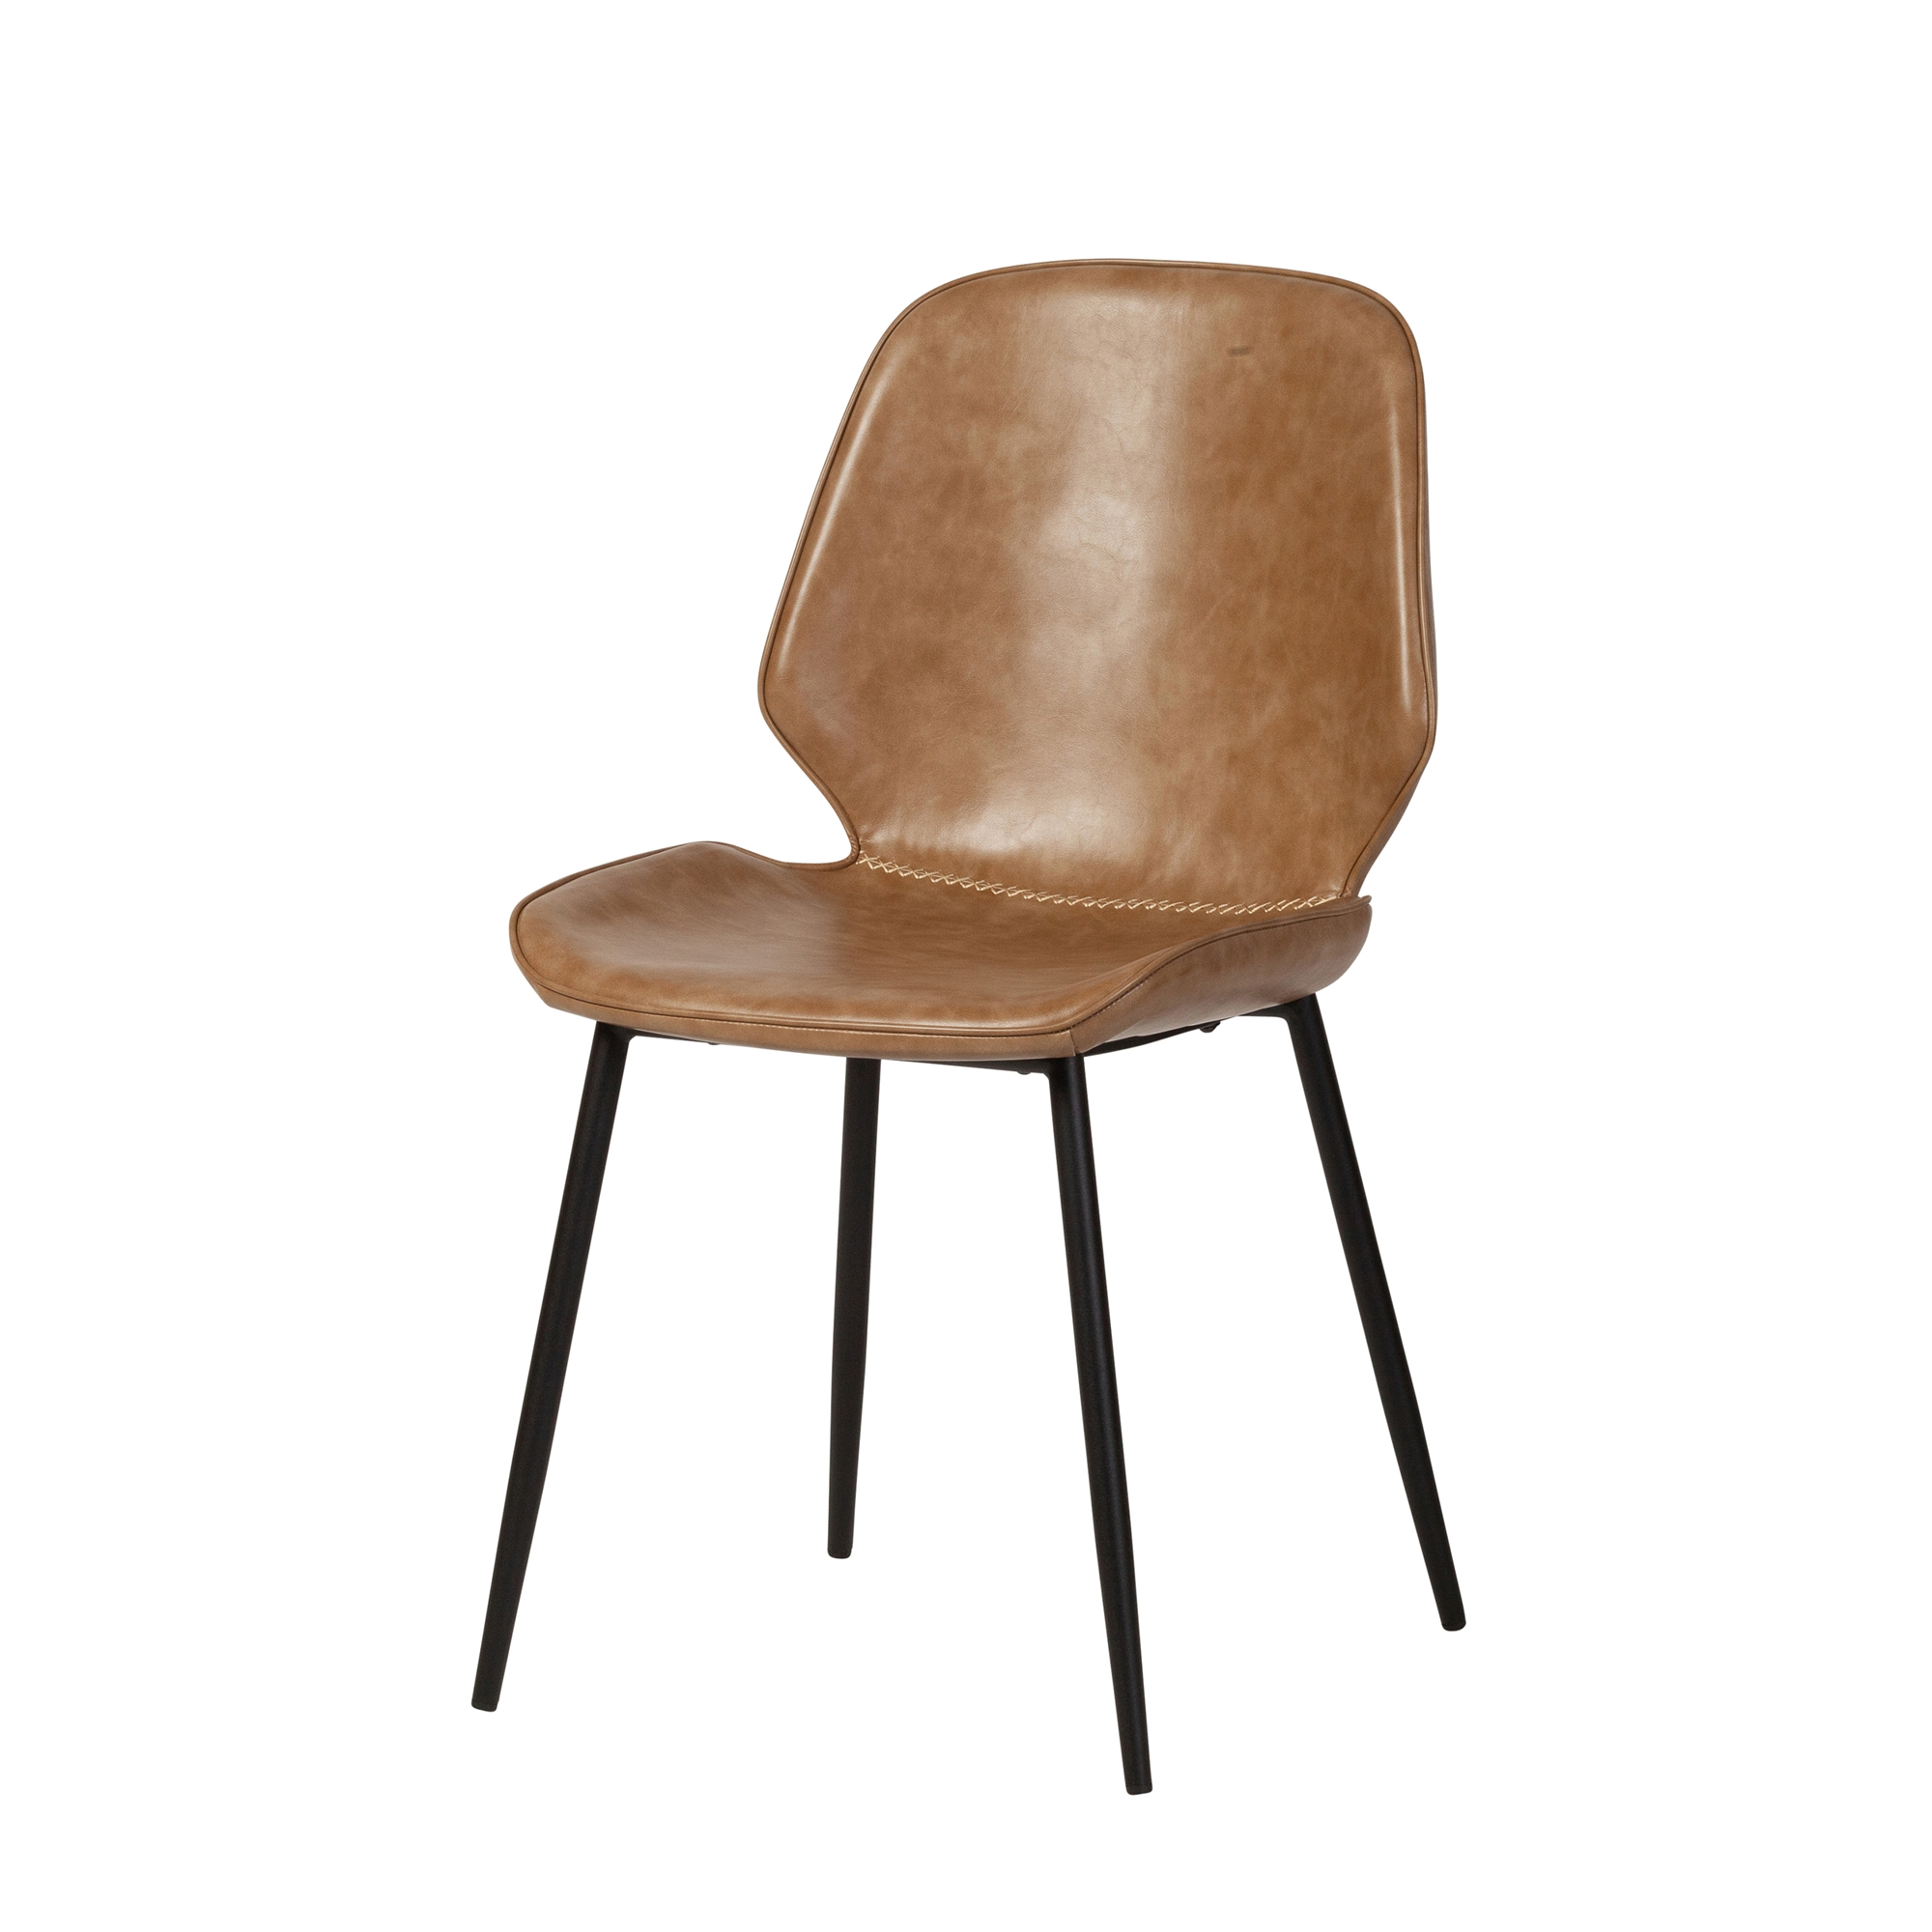 Phenomenal Cougar Distressed Taupe Leather Dining Chair Gmtry Best Dining Table And Chair Ideas Images Gmtryco